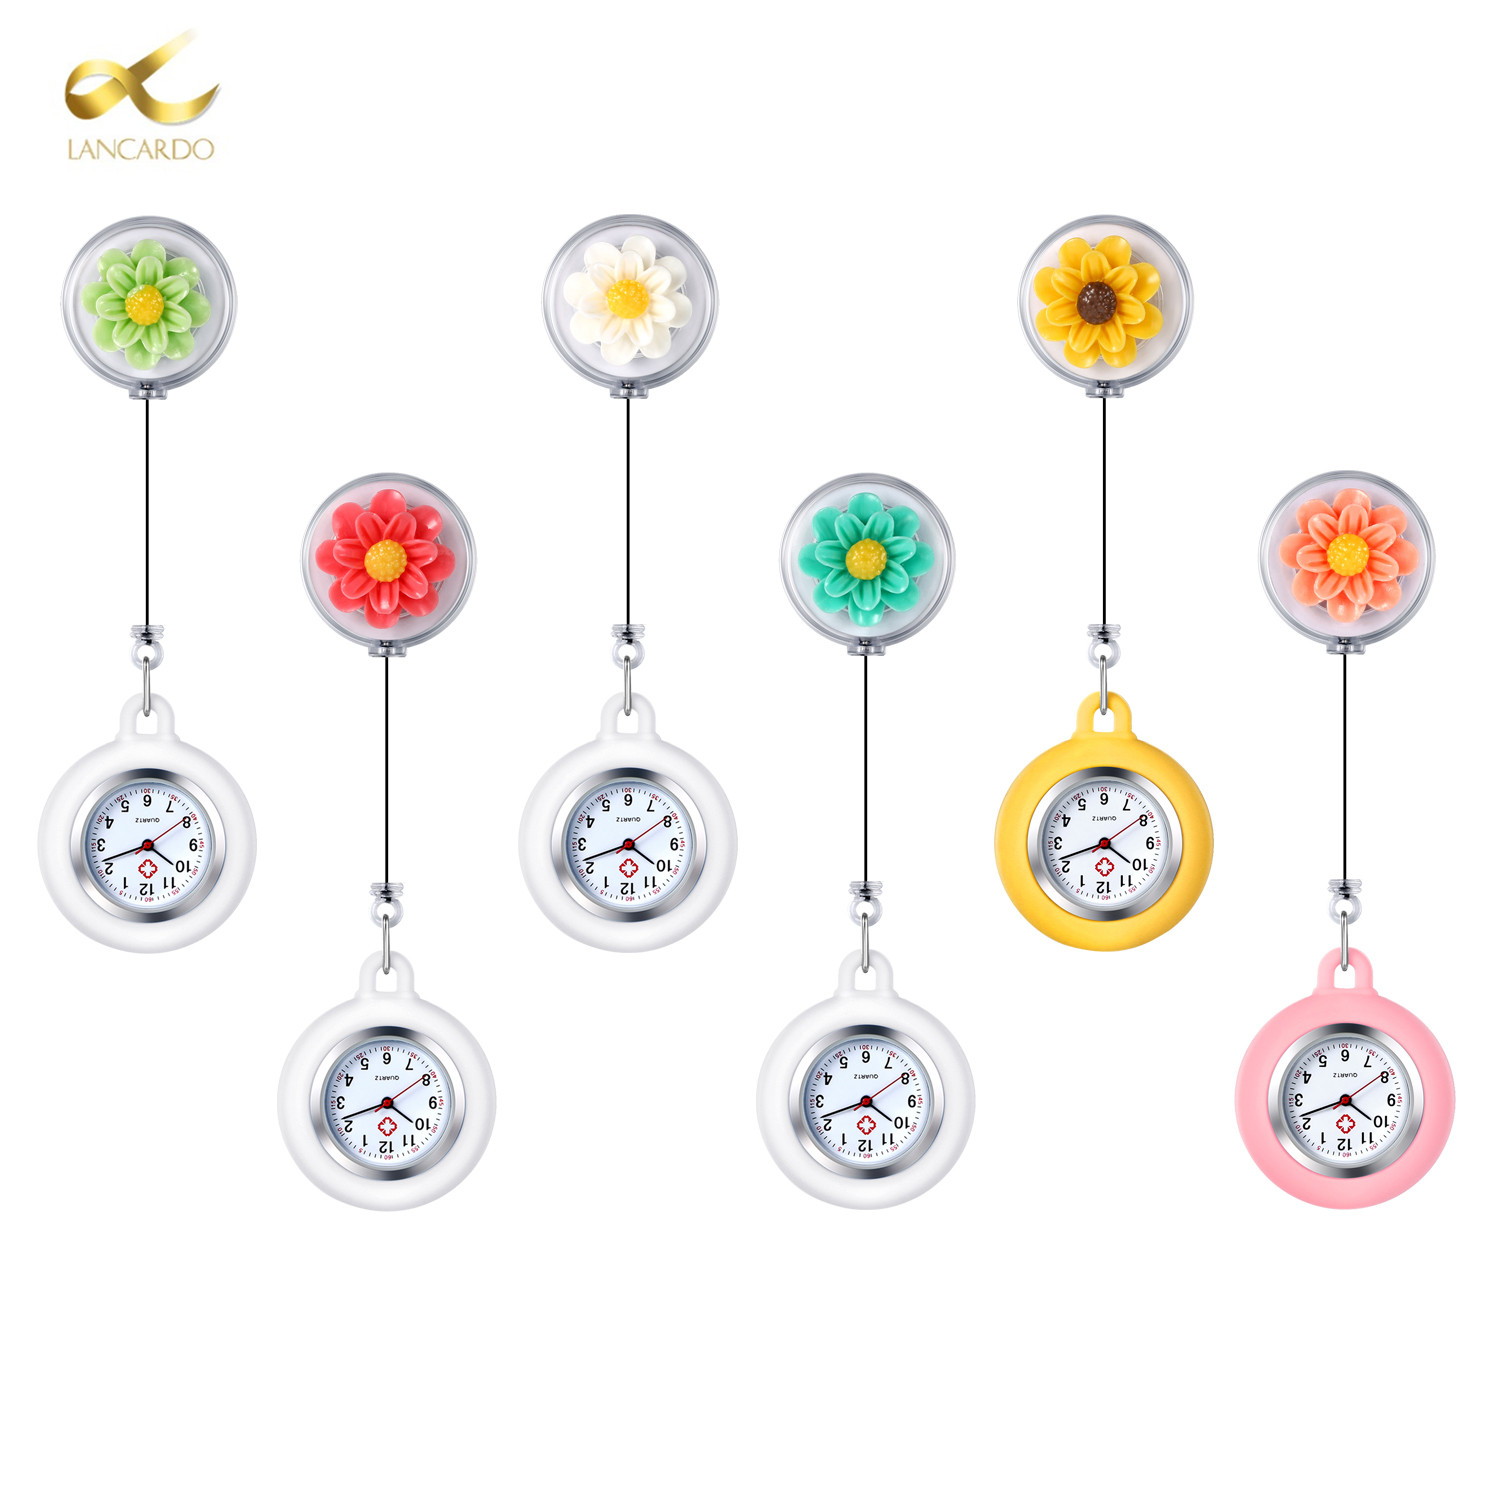 LANCARDO Pocket Watch Lady Colorful Flower Quartz Clip Brooch Nurse Hanging Pocket Watch Relogio Feminino Saat Dropshipping